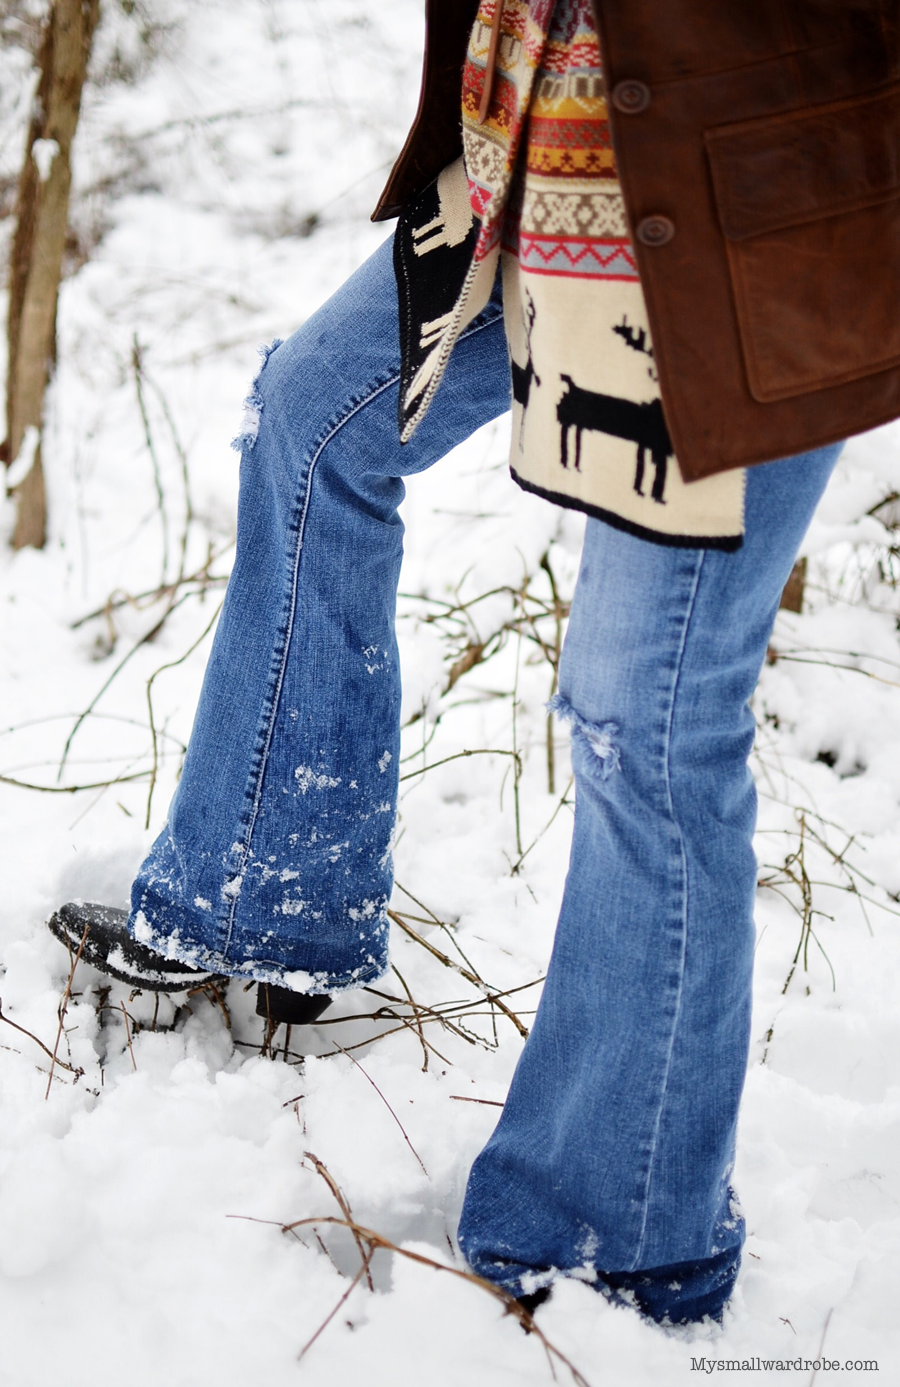 Cowboy boots in the snow